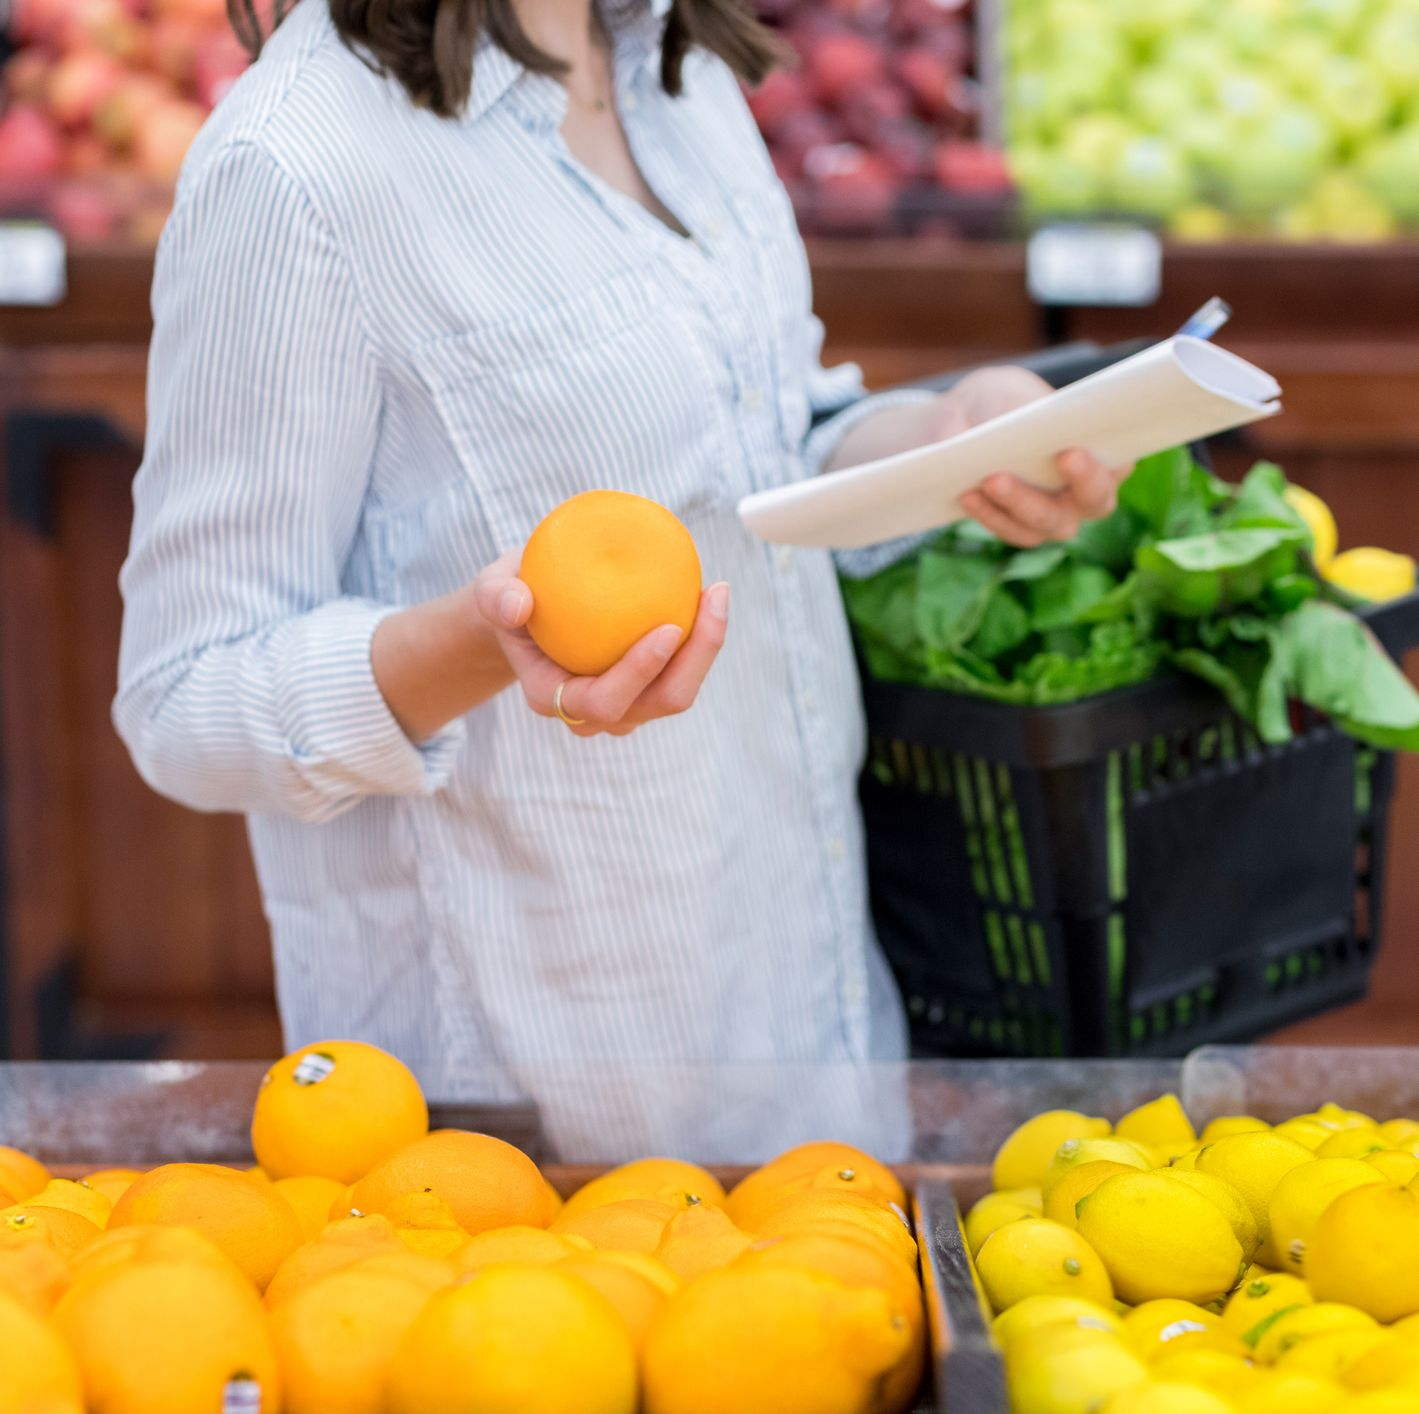 Unrecognizable woman shops for oranges